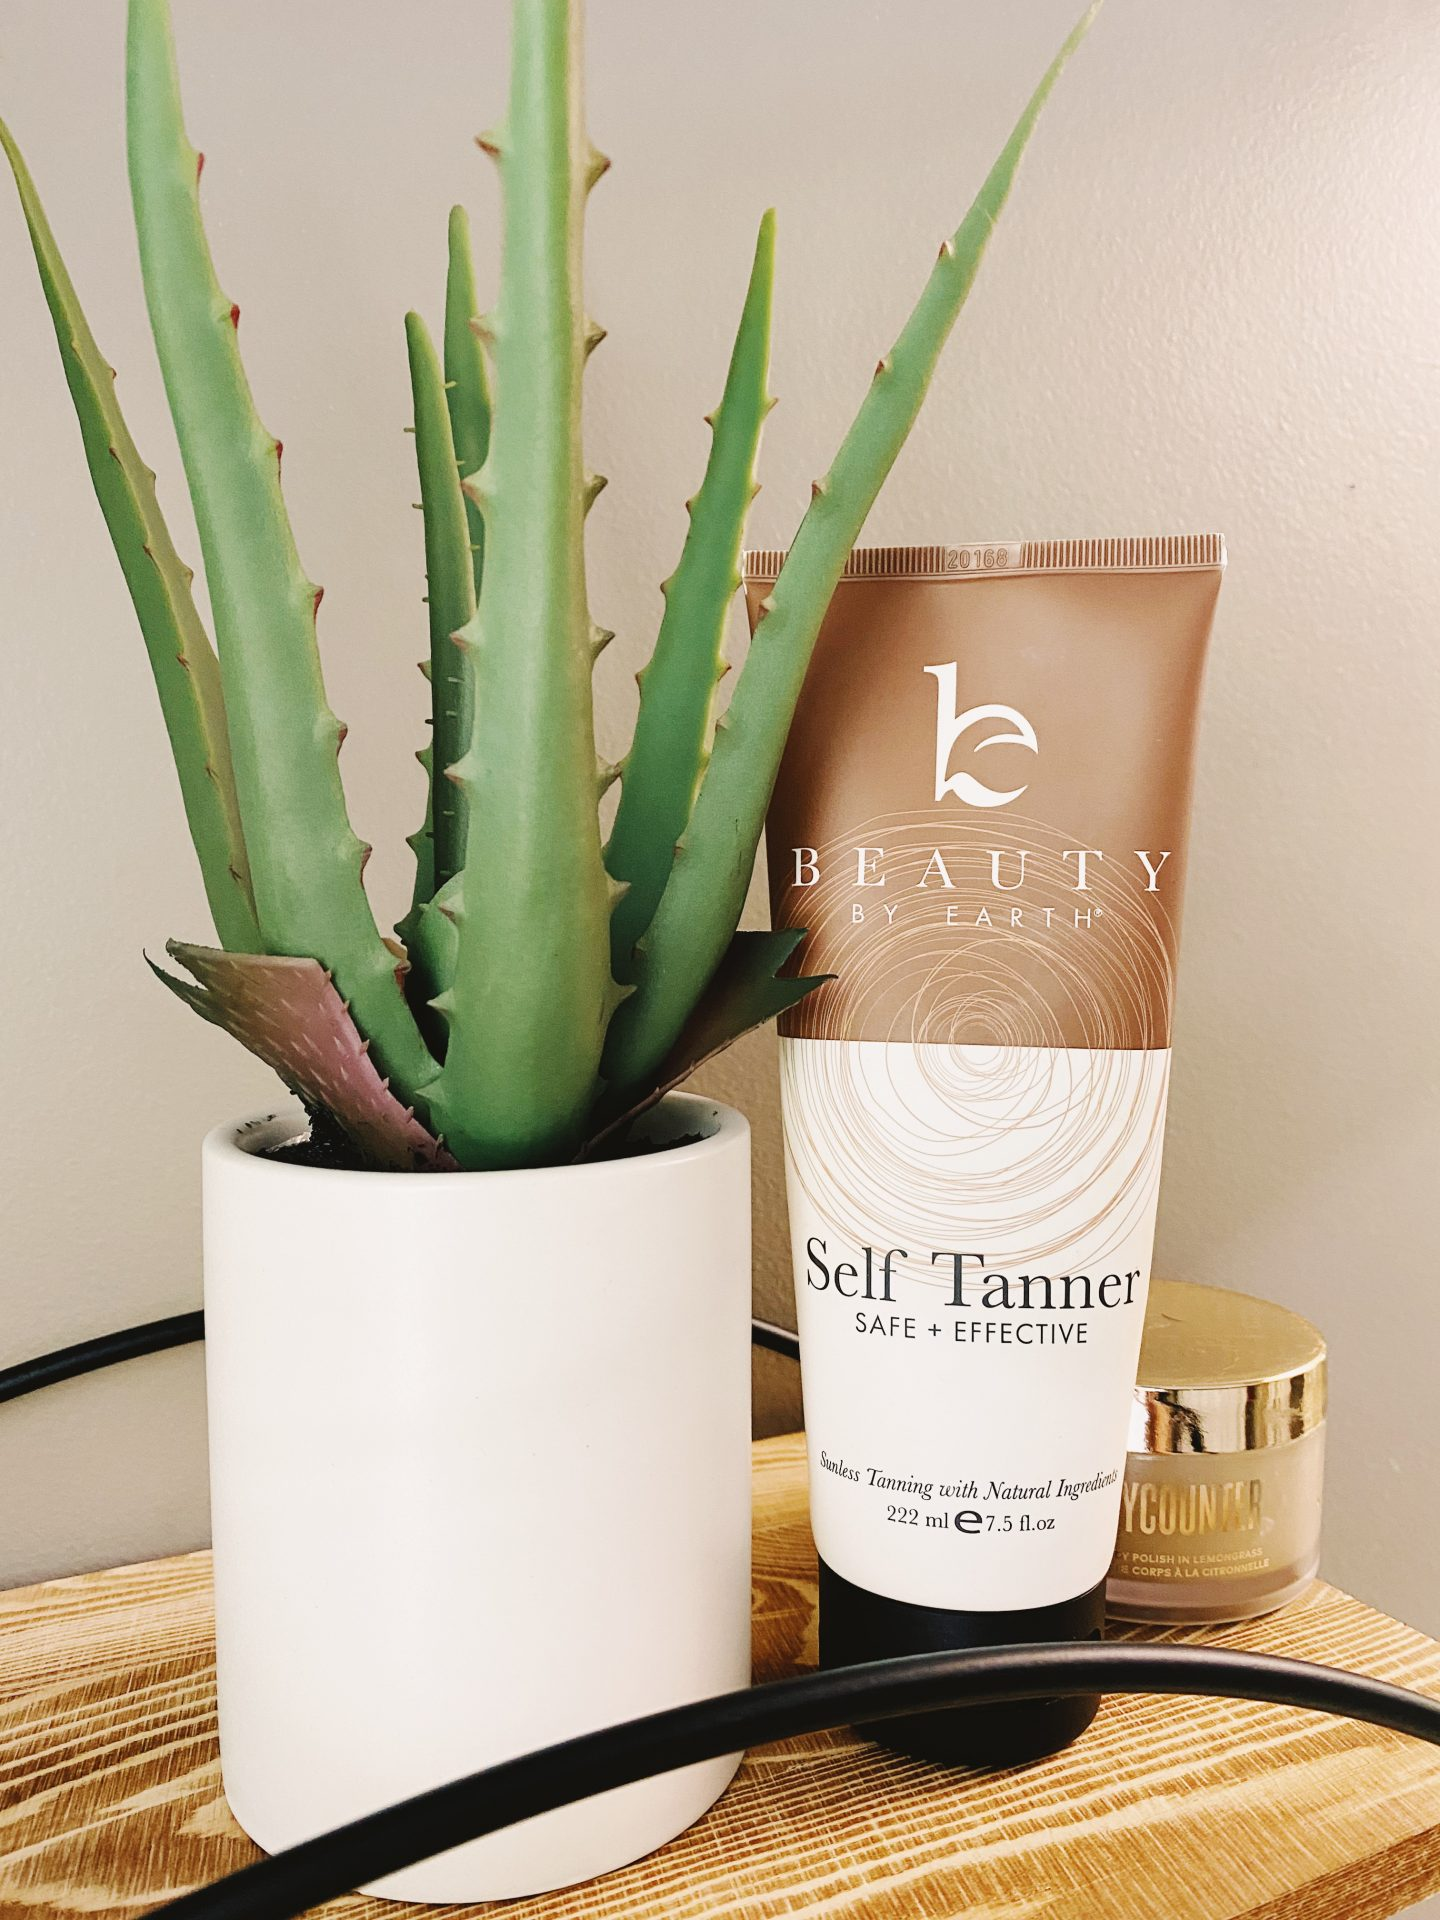 My favorite Clean Living Products | Best Nontoxic Clean Self Tanner for Natural Tan | Beauty By Earth Self Tanner